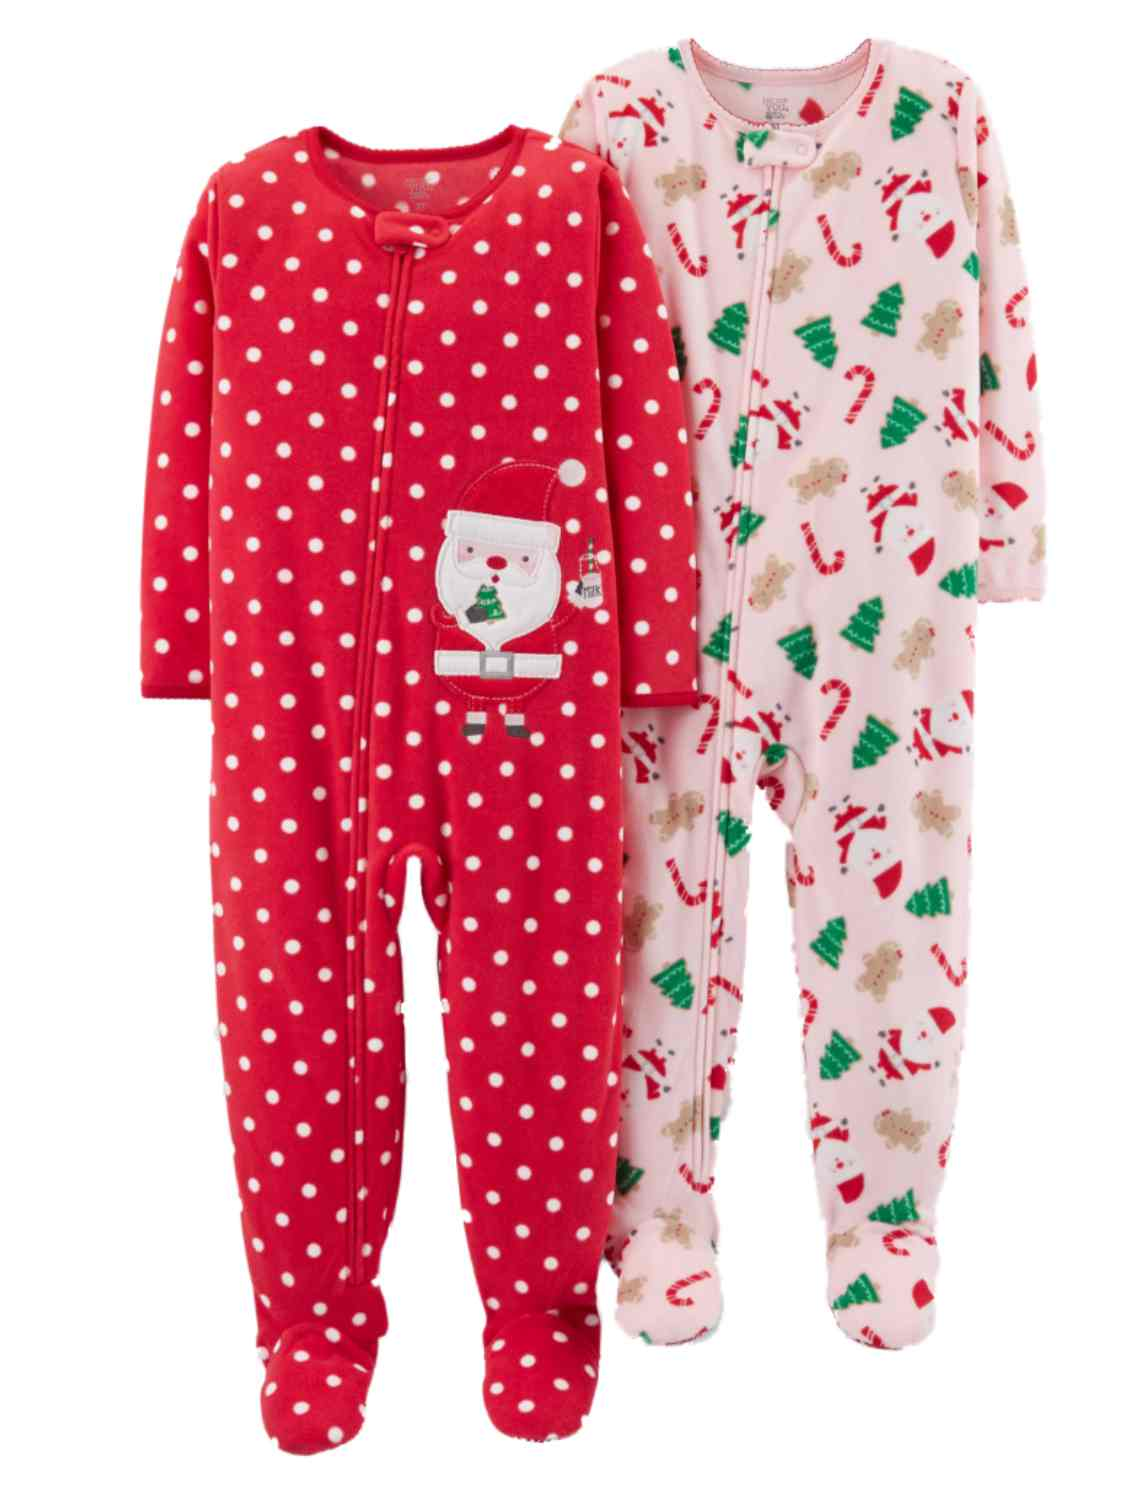 Carters Infant Girls 2 Pack Fleece Santa Claus Christmas Blanket Sleeper Pajamas